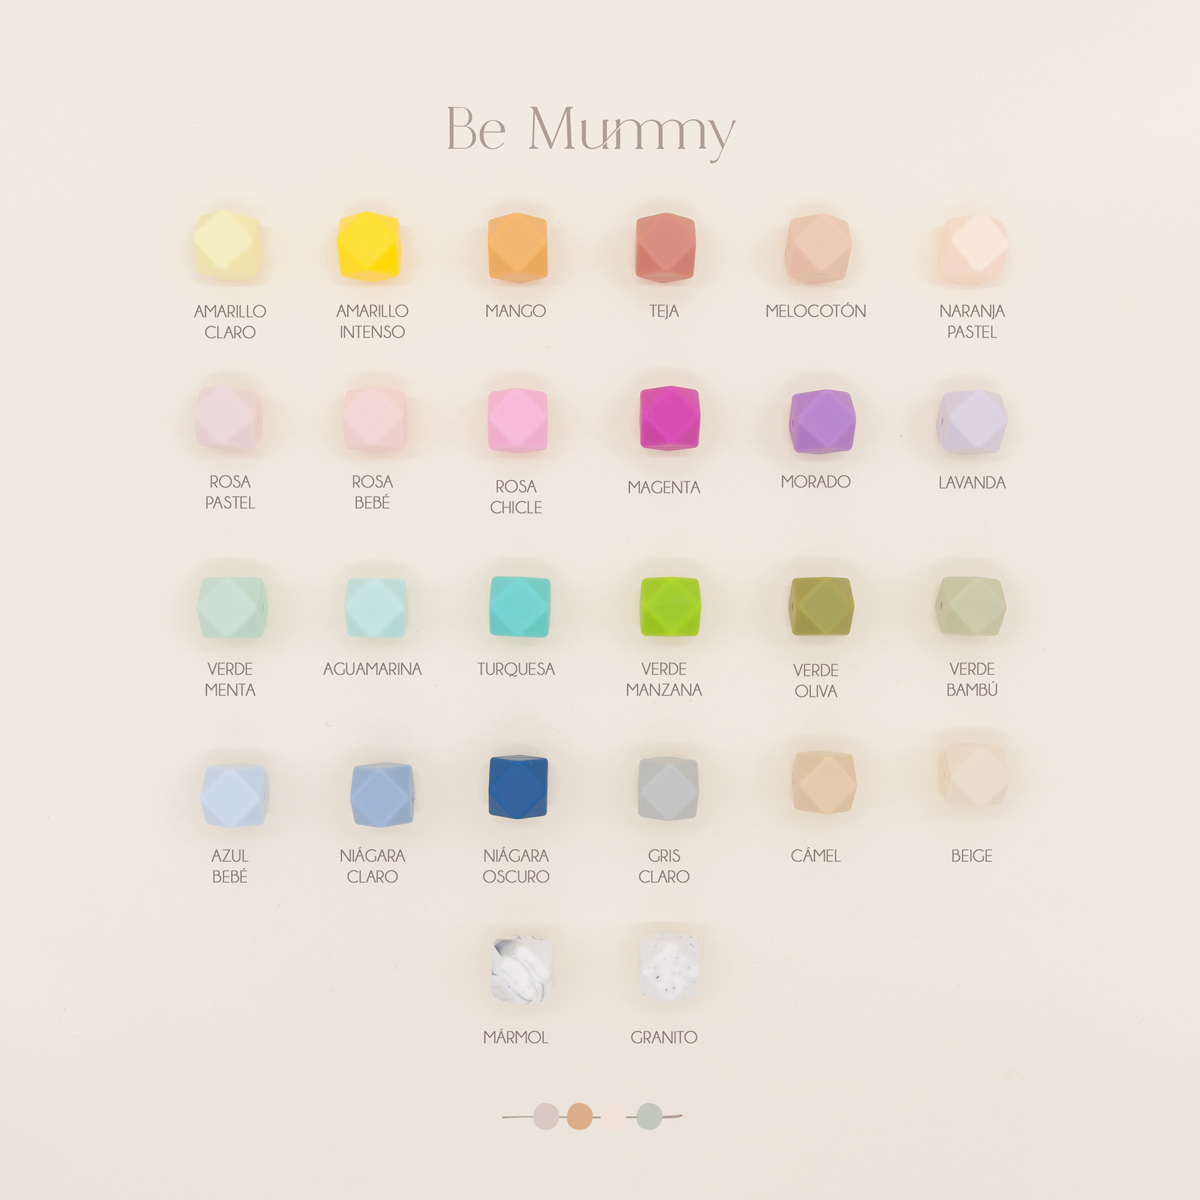 Carta colores Chupeteros Personalizados Be Mummy